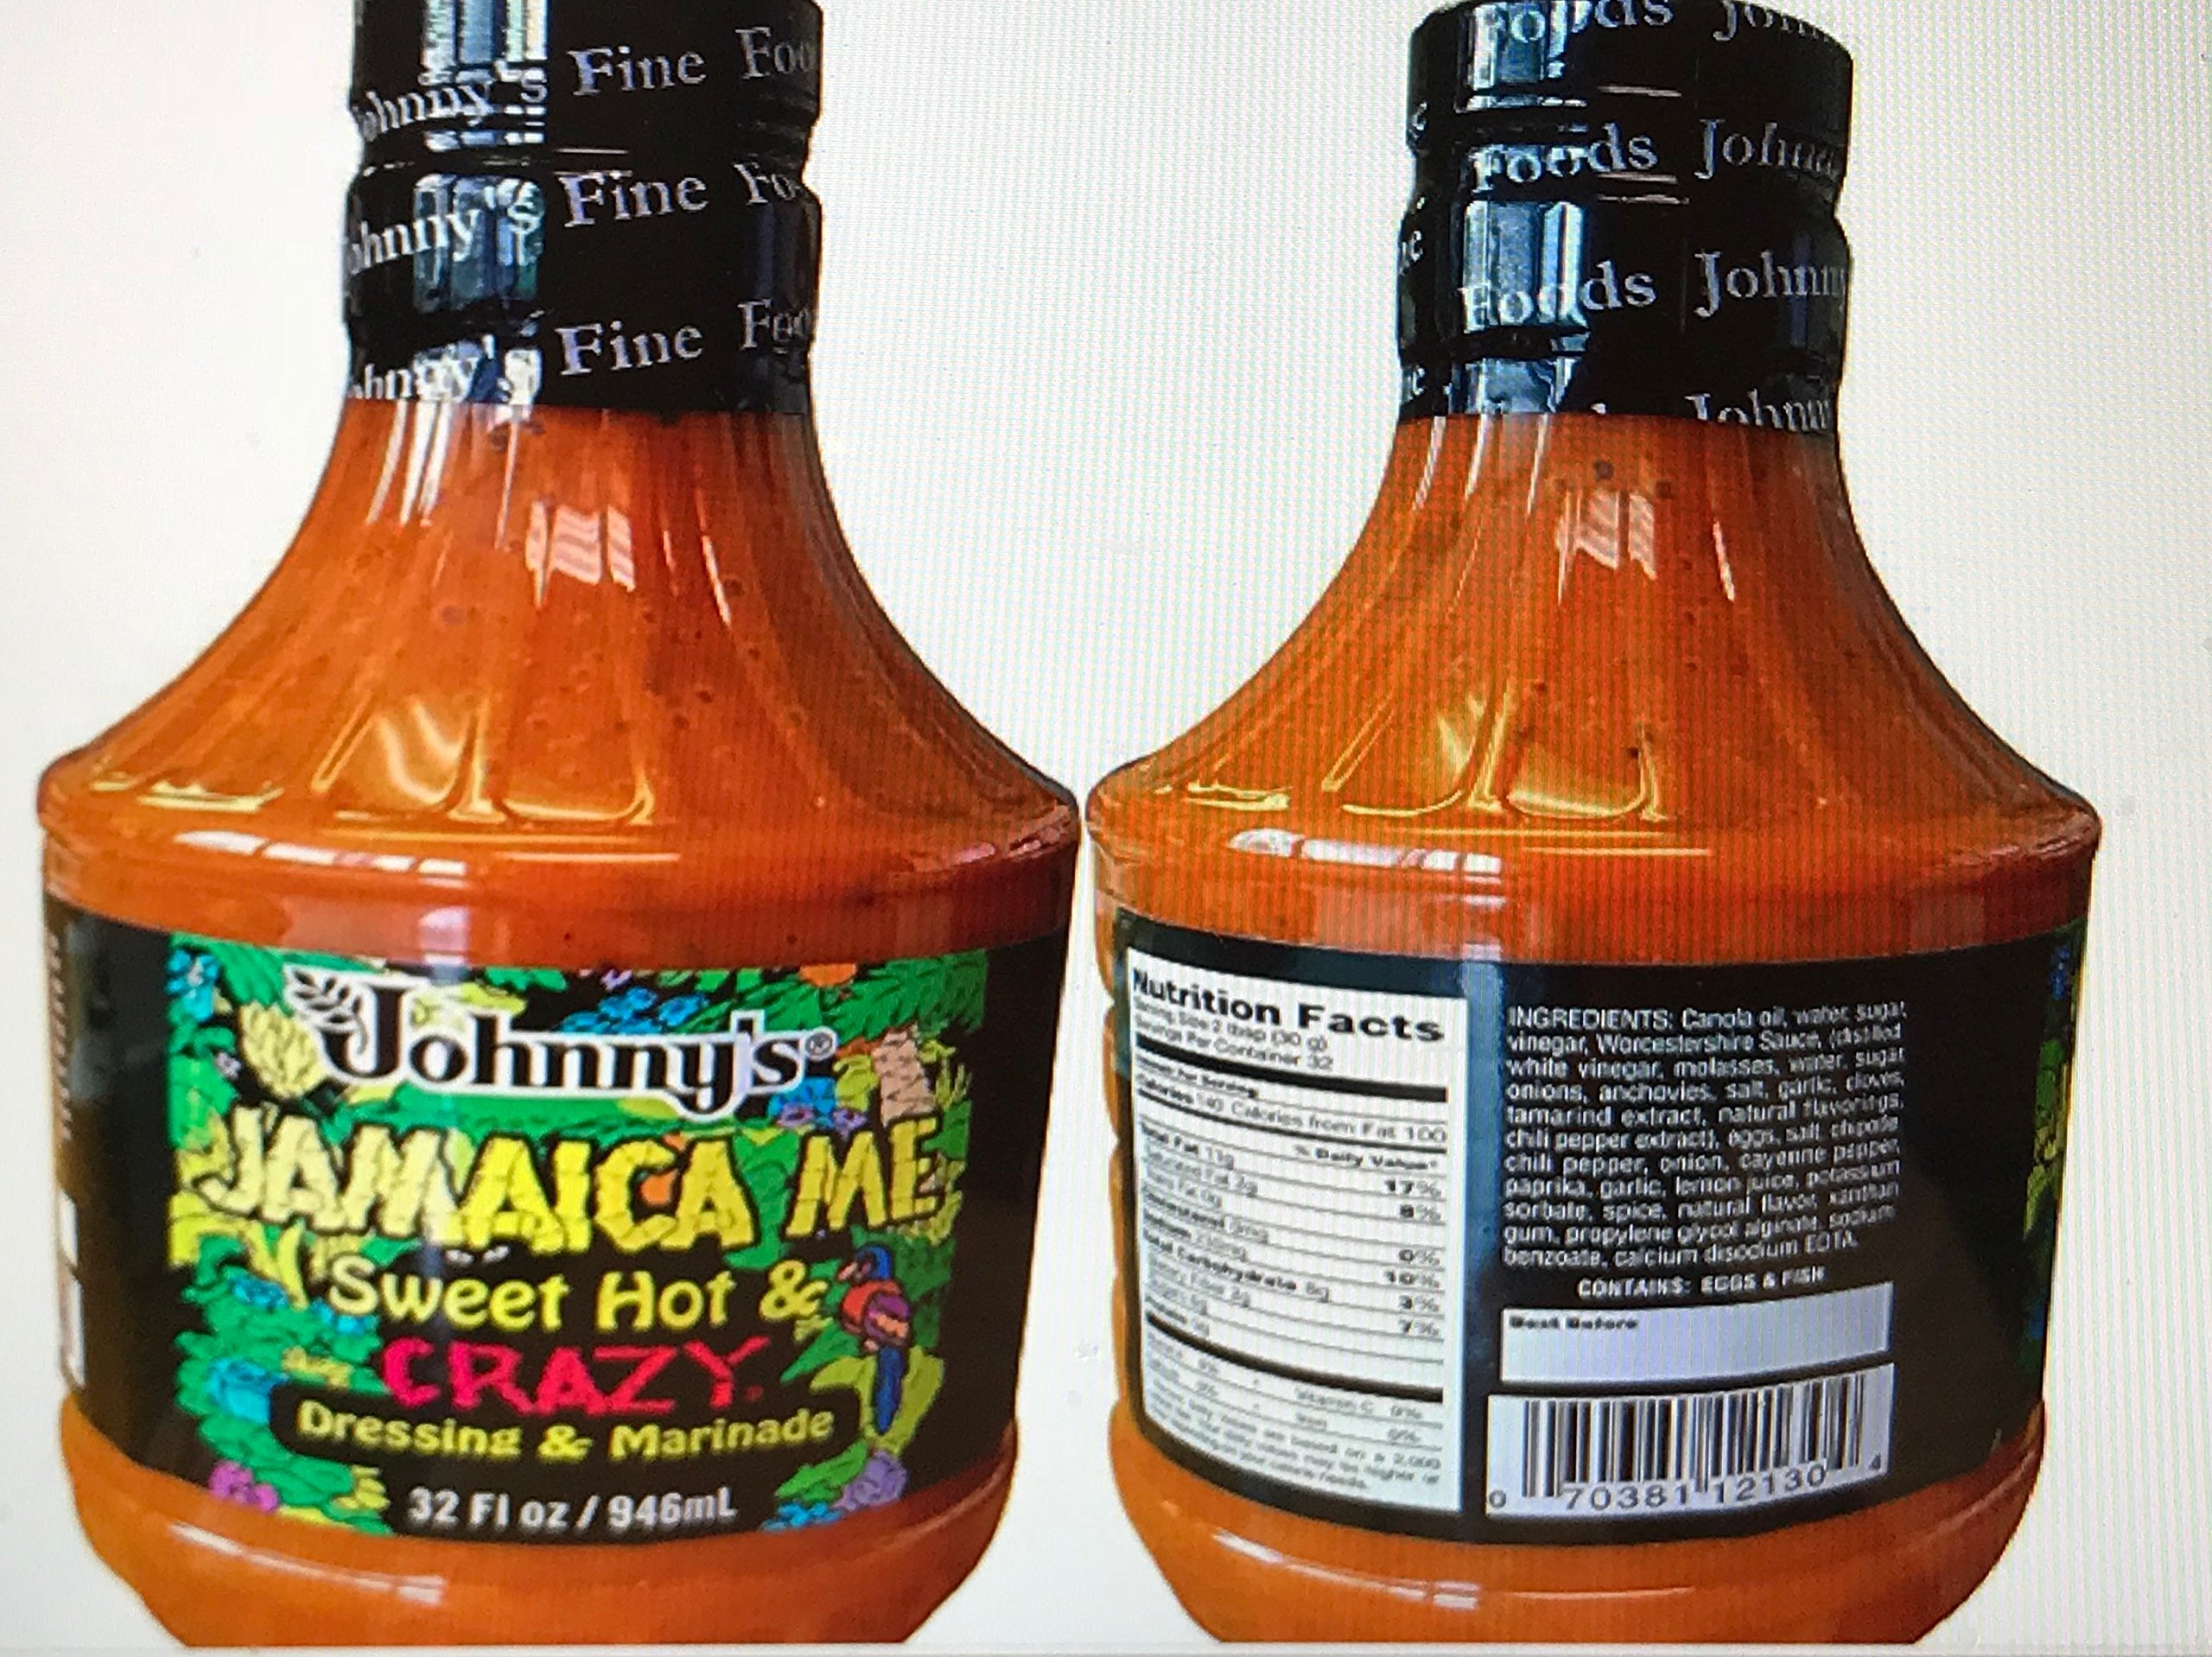 Johnny's Jamaica Me Sweet, Hot and Crazy Marinade Dressing (2 pack) by Johnny's